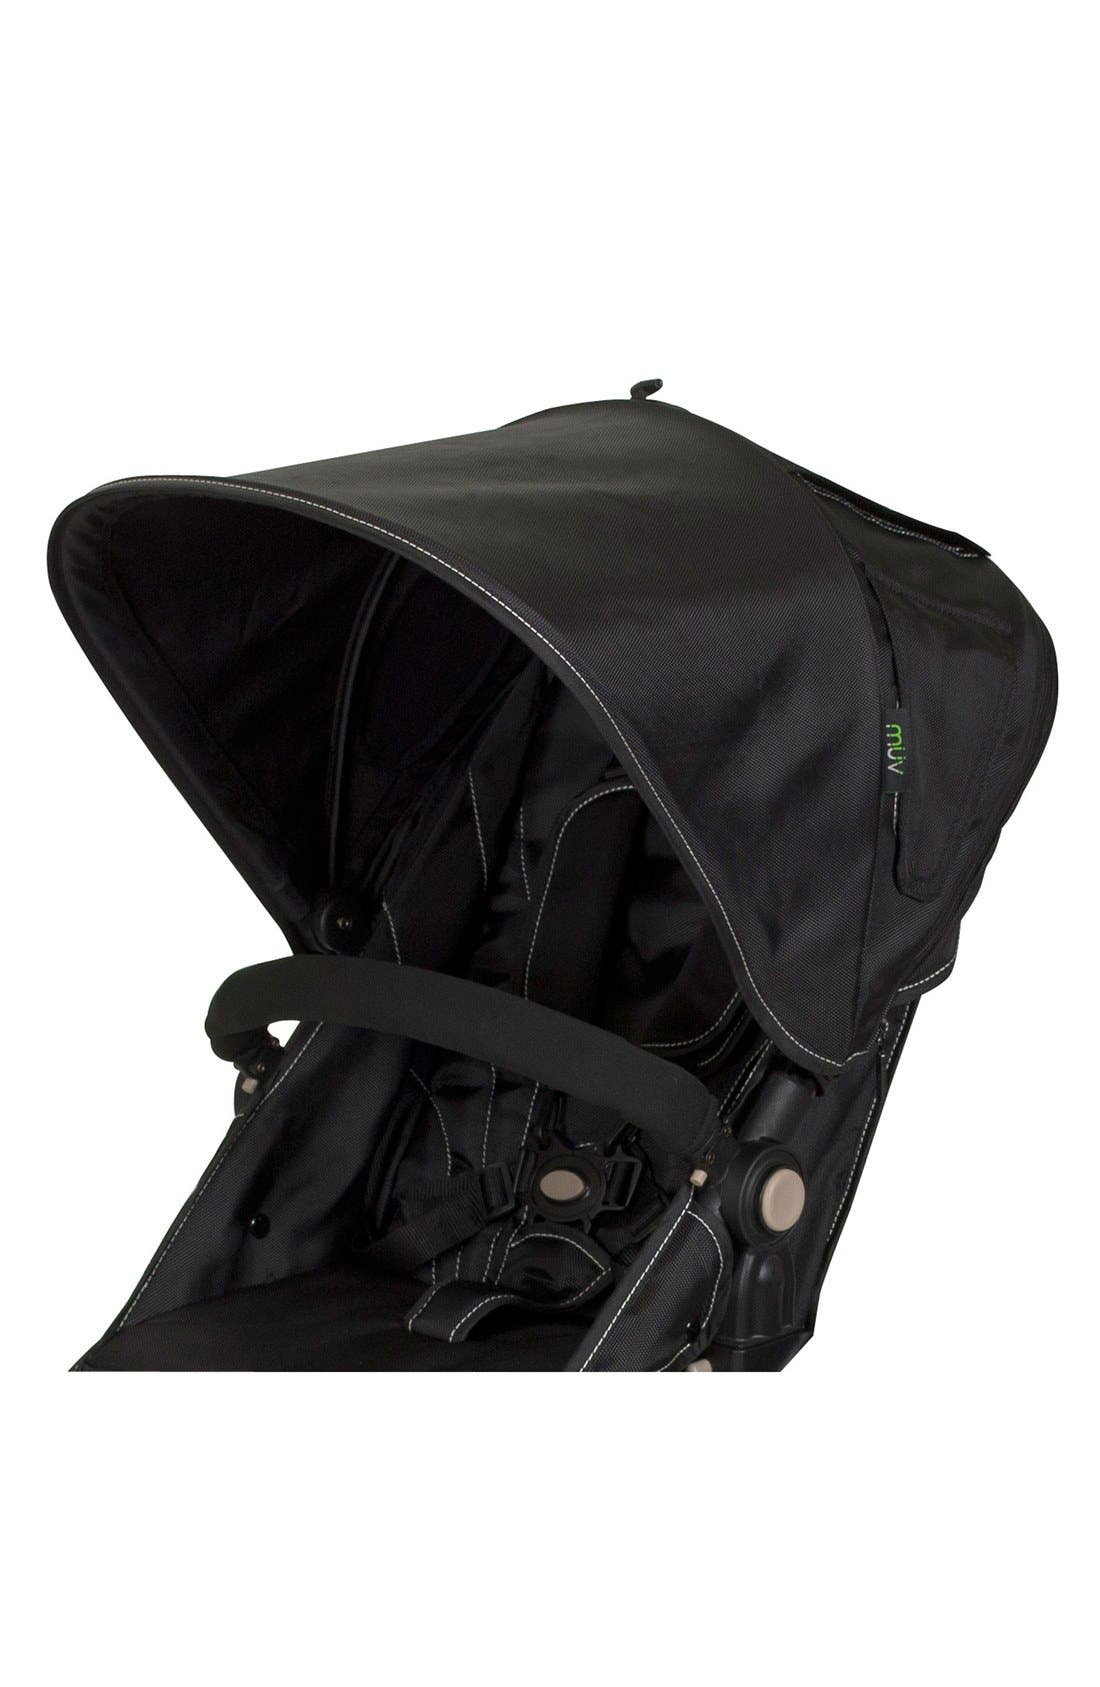 Alternate Image 1 Selected - Muv KOEPEL Stroller Canopy